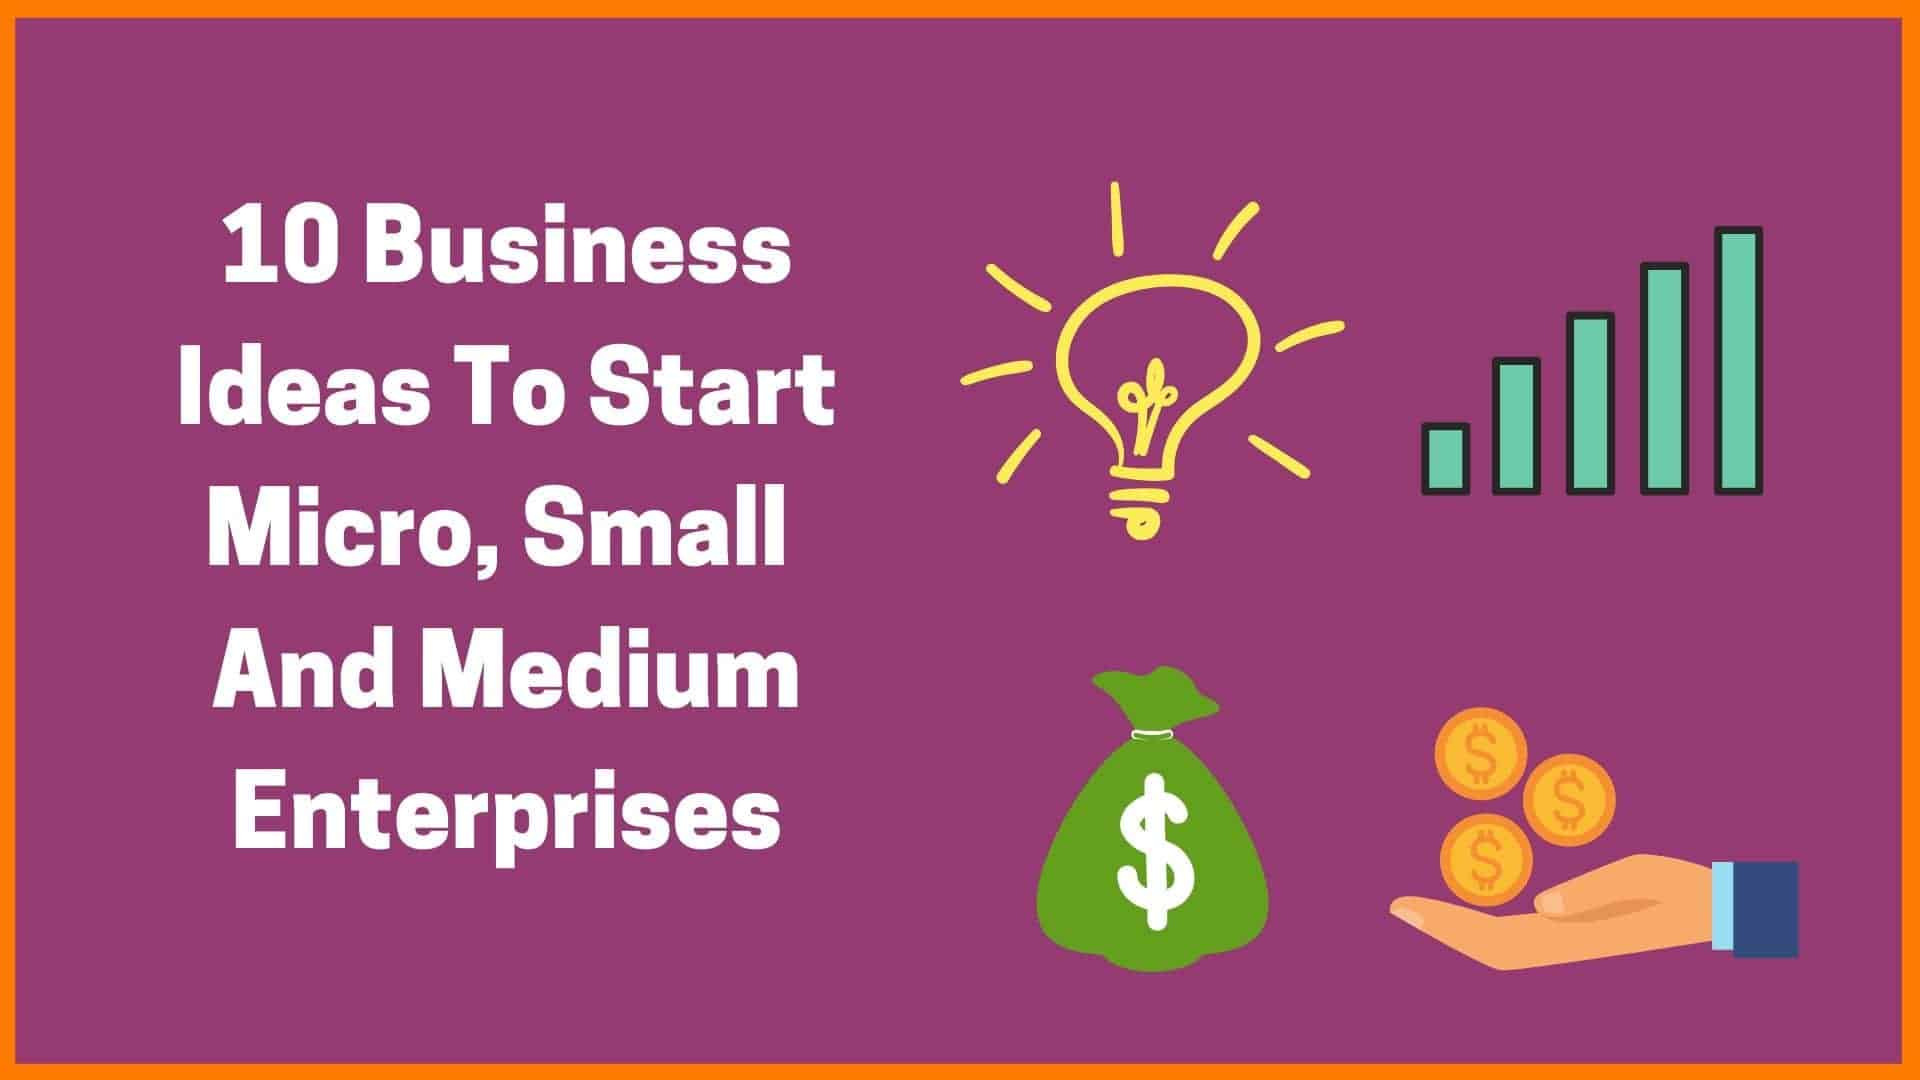 10 Business Ideas Related to Micro, Small, And Medium Enterprises (MSME)